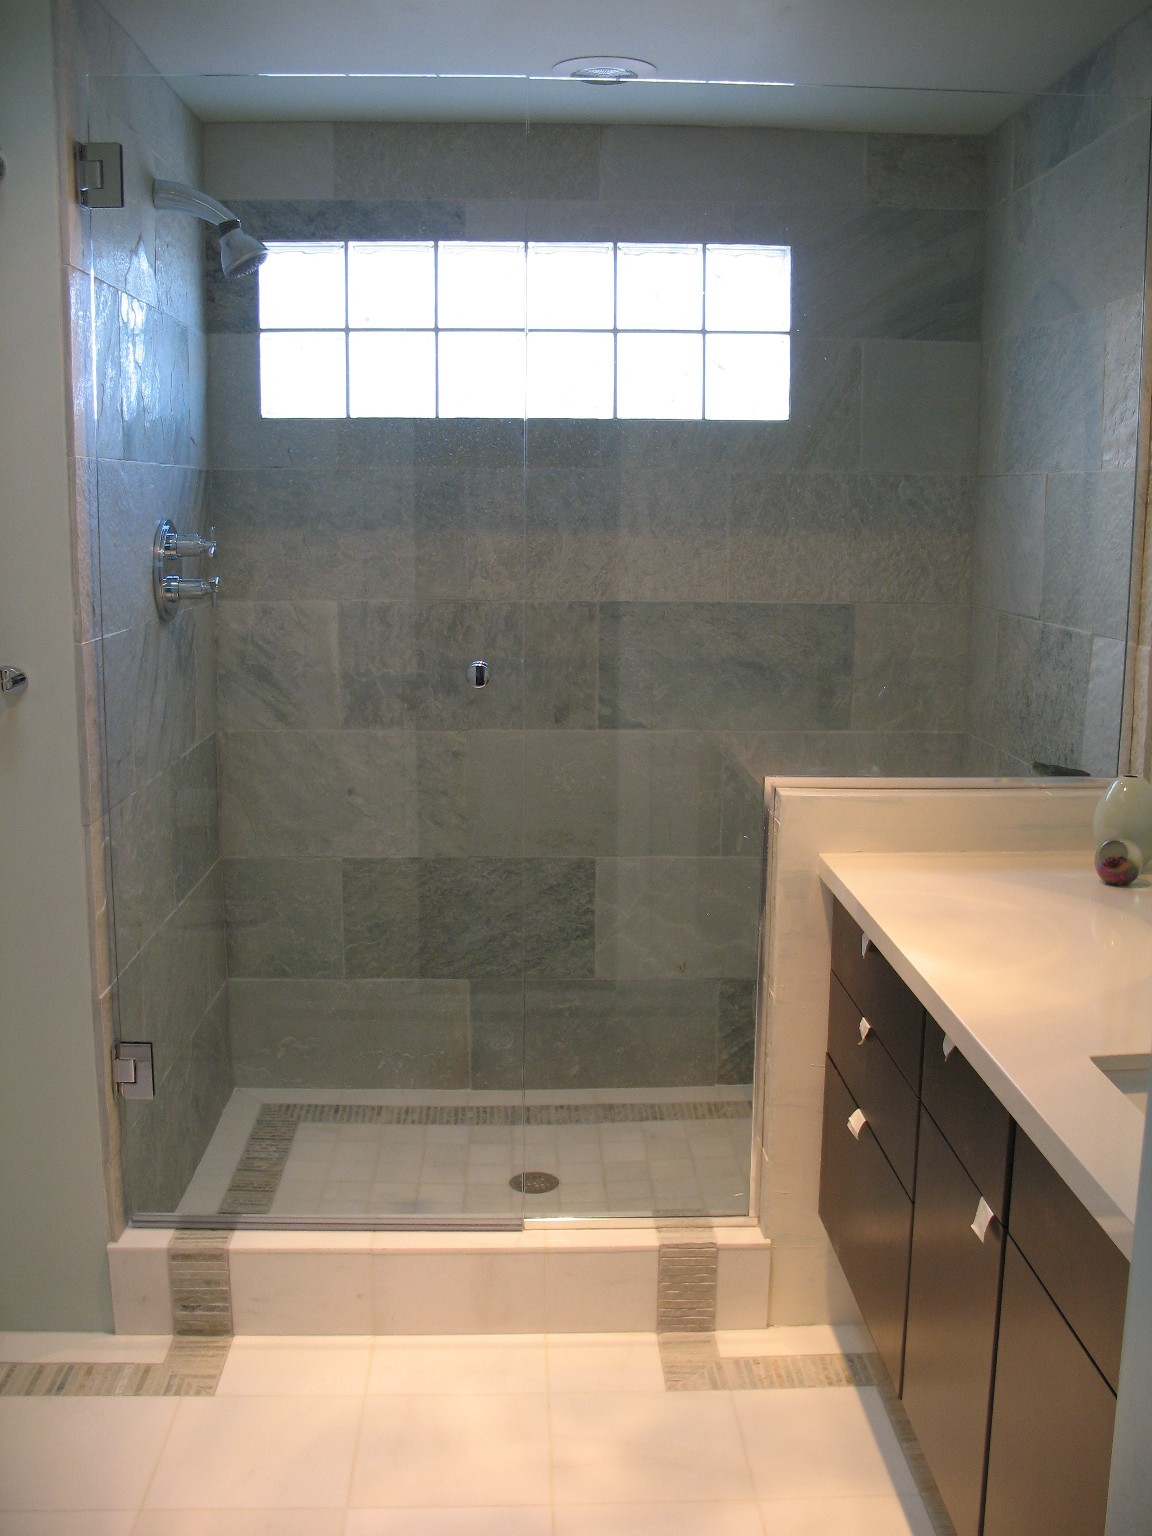 30 shower tile ideas on a budget Bathroom tile pictures gallery